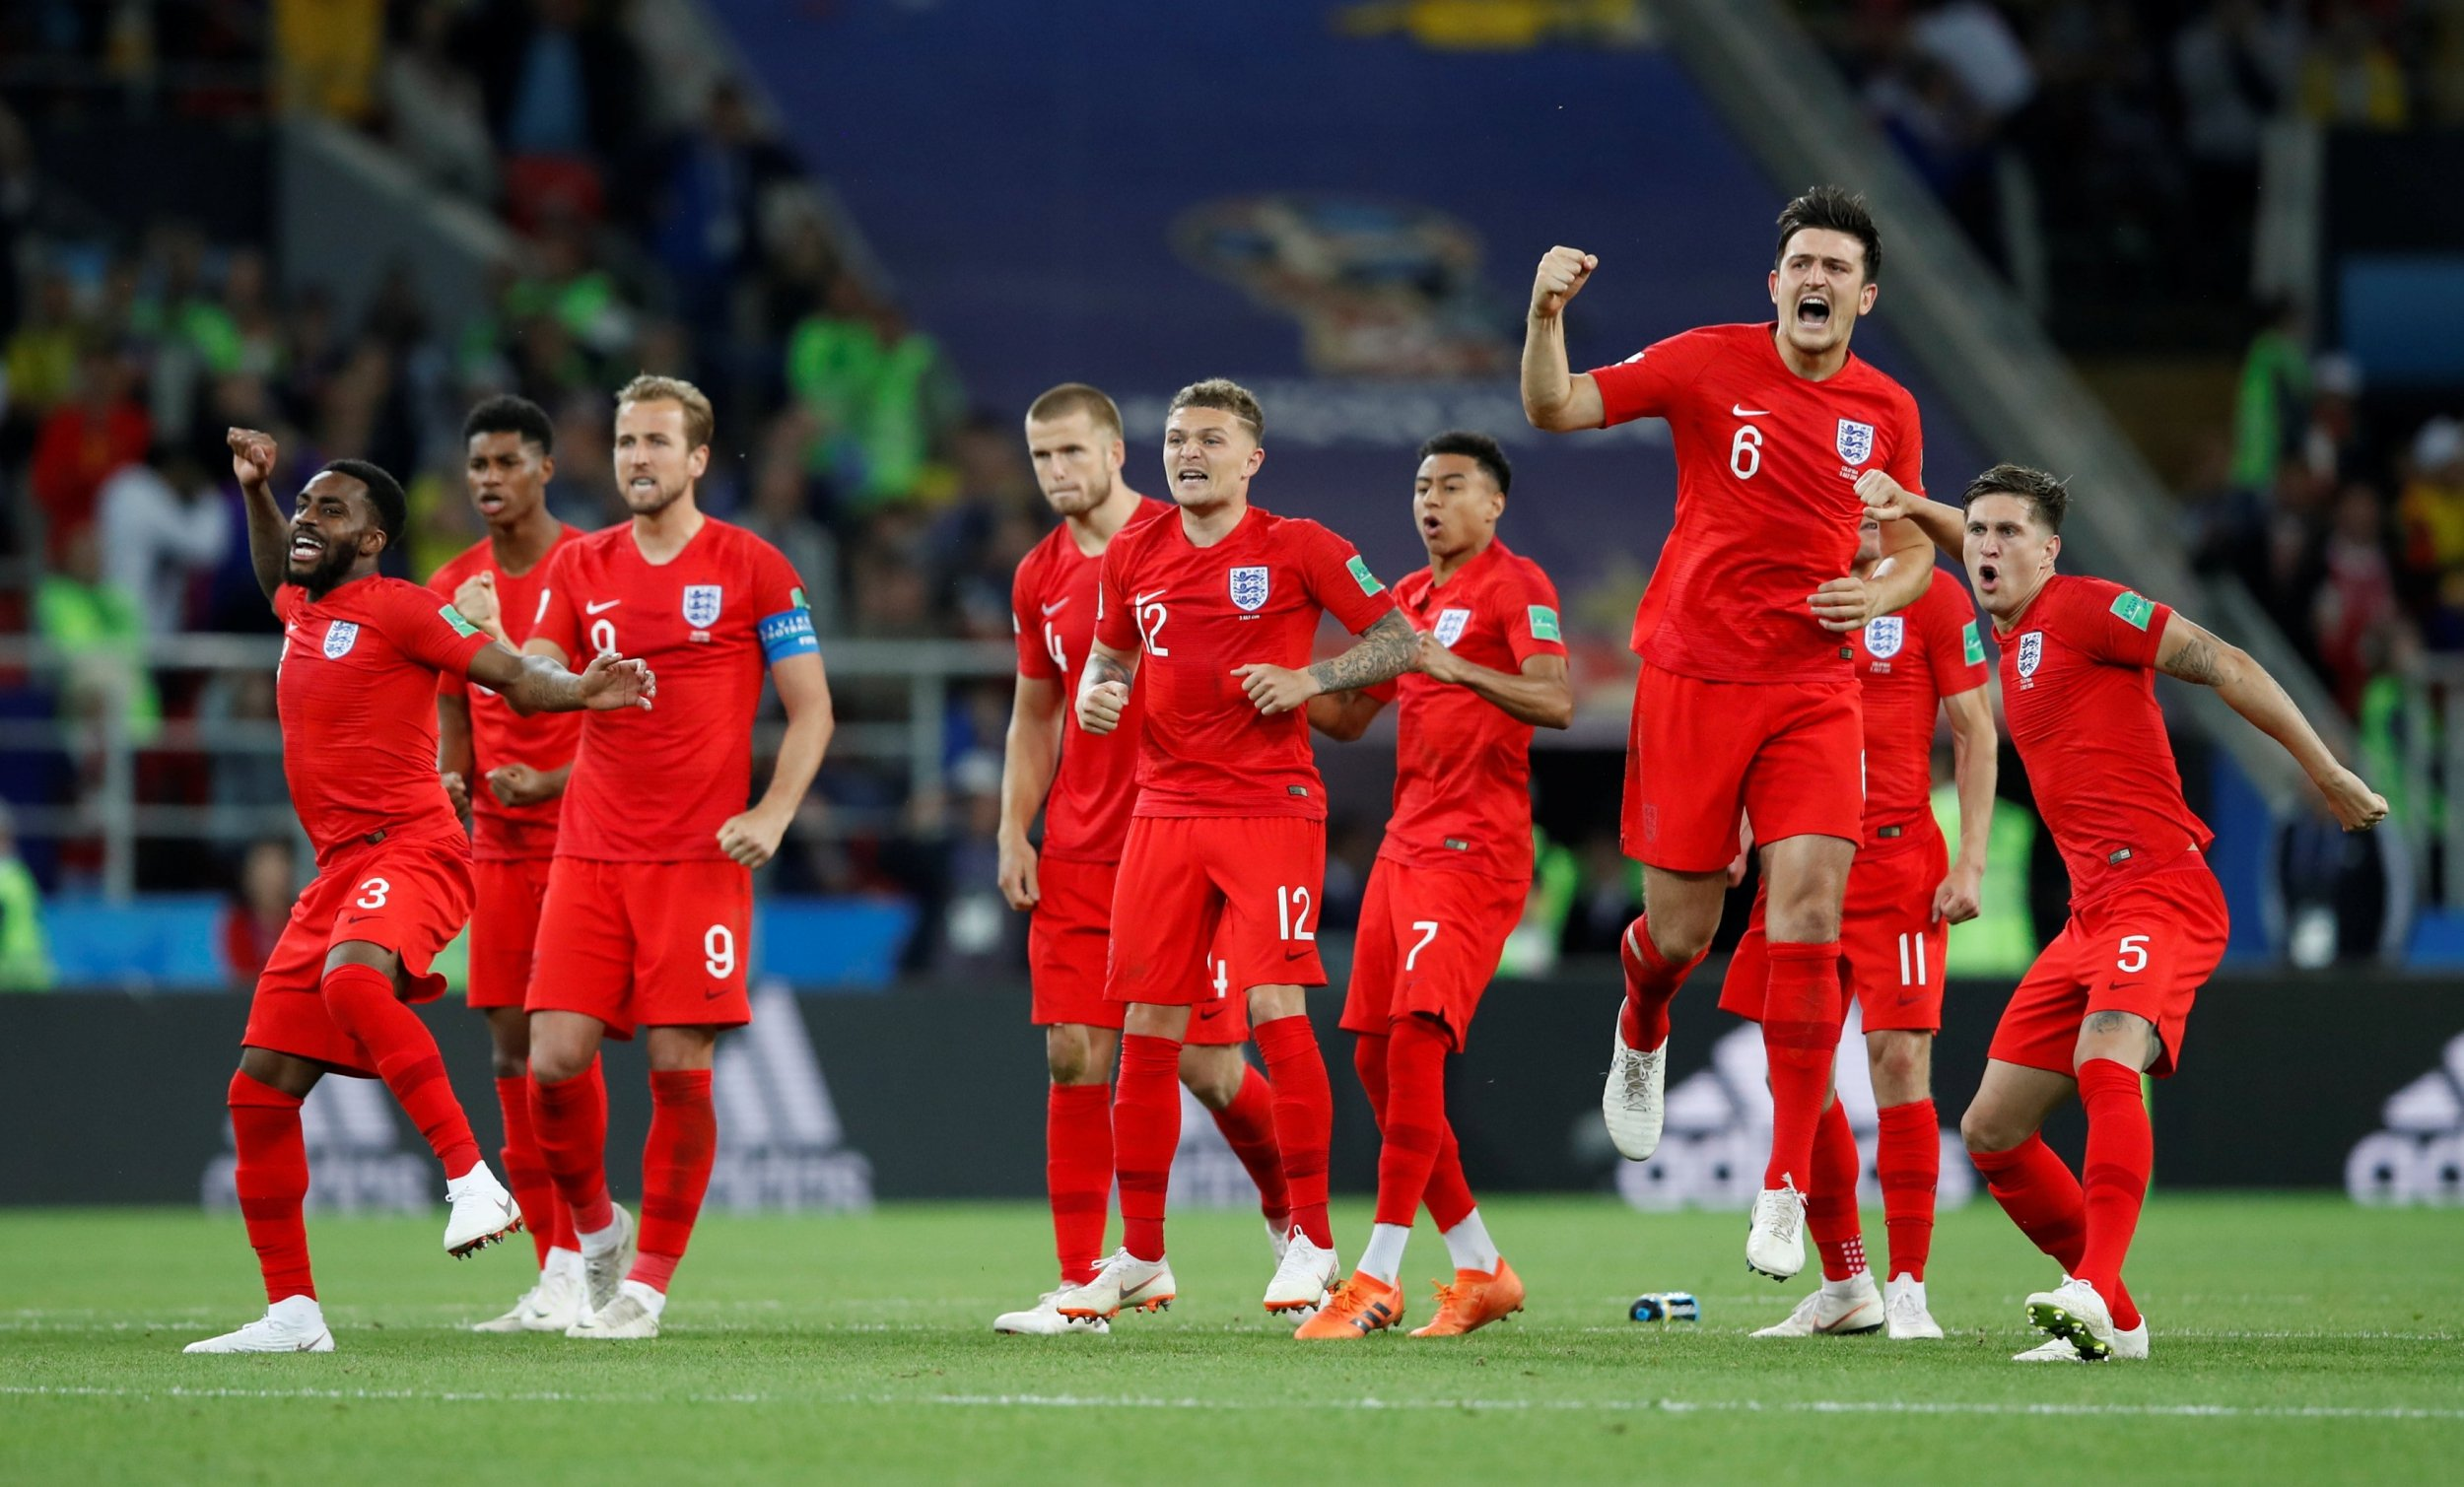 2018-07-03T205354Z-1561764495-RC1C81919A40-RTRMADP-3-SOCCER-WORLDCUP-COL-ENG.jpg